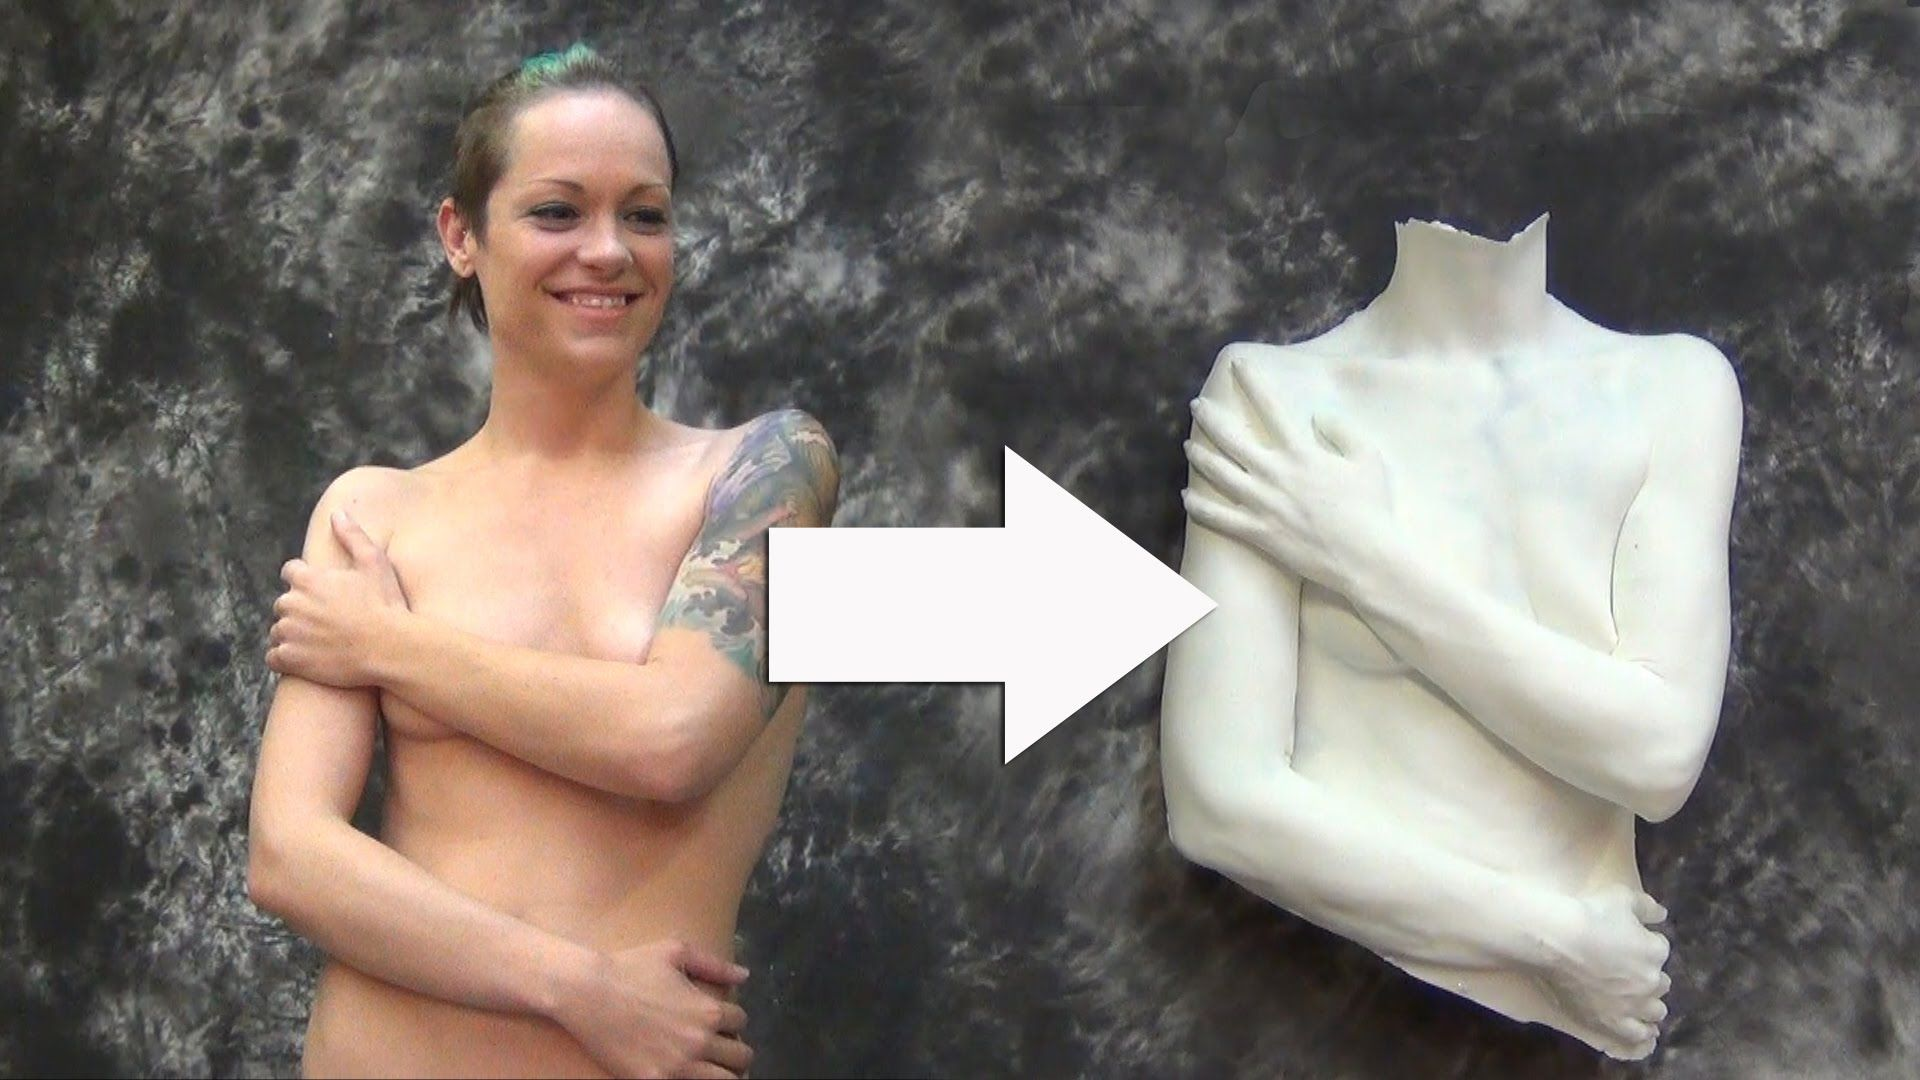 In this tutorial we show how to make a torso mold using